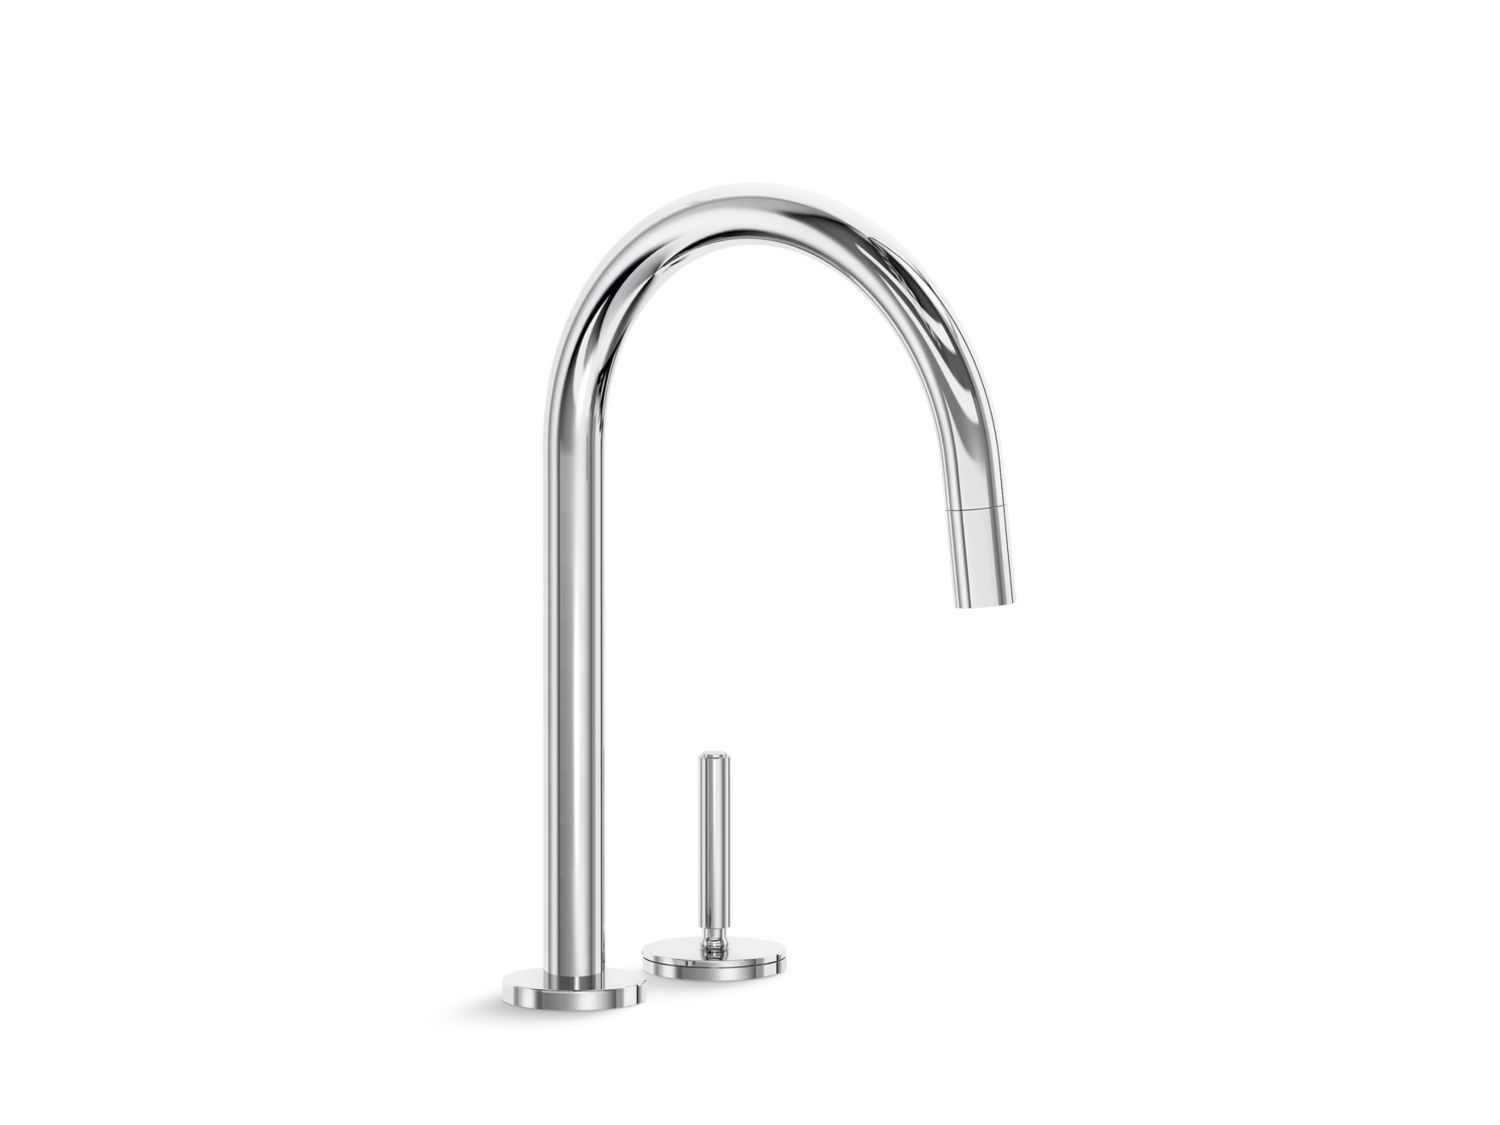 obj single kallista models interior control max faucet faucets kitchen model one sink